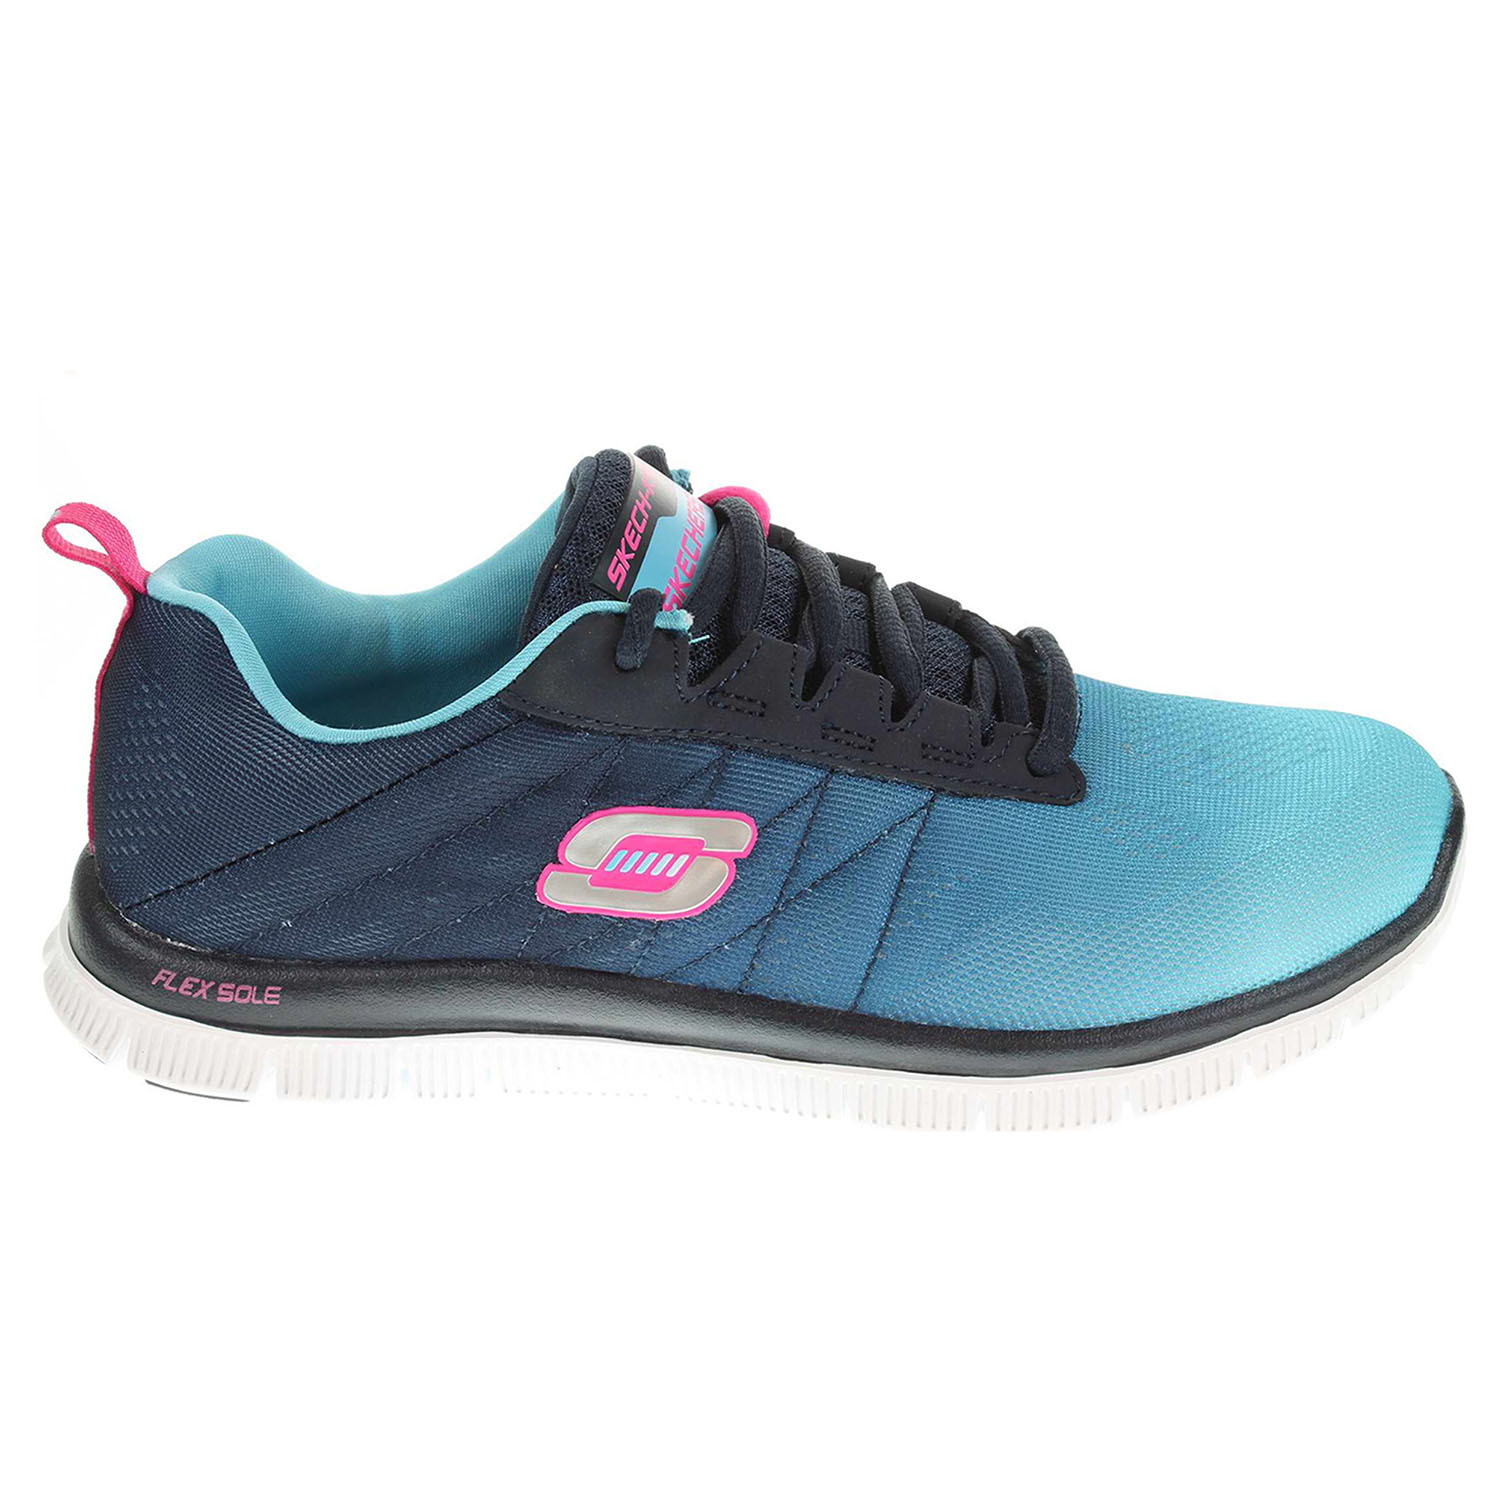 Skechers Flex Appeal New Arrival light blue 40